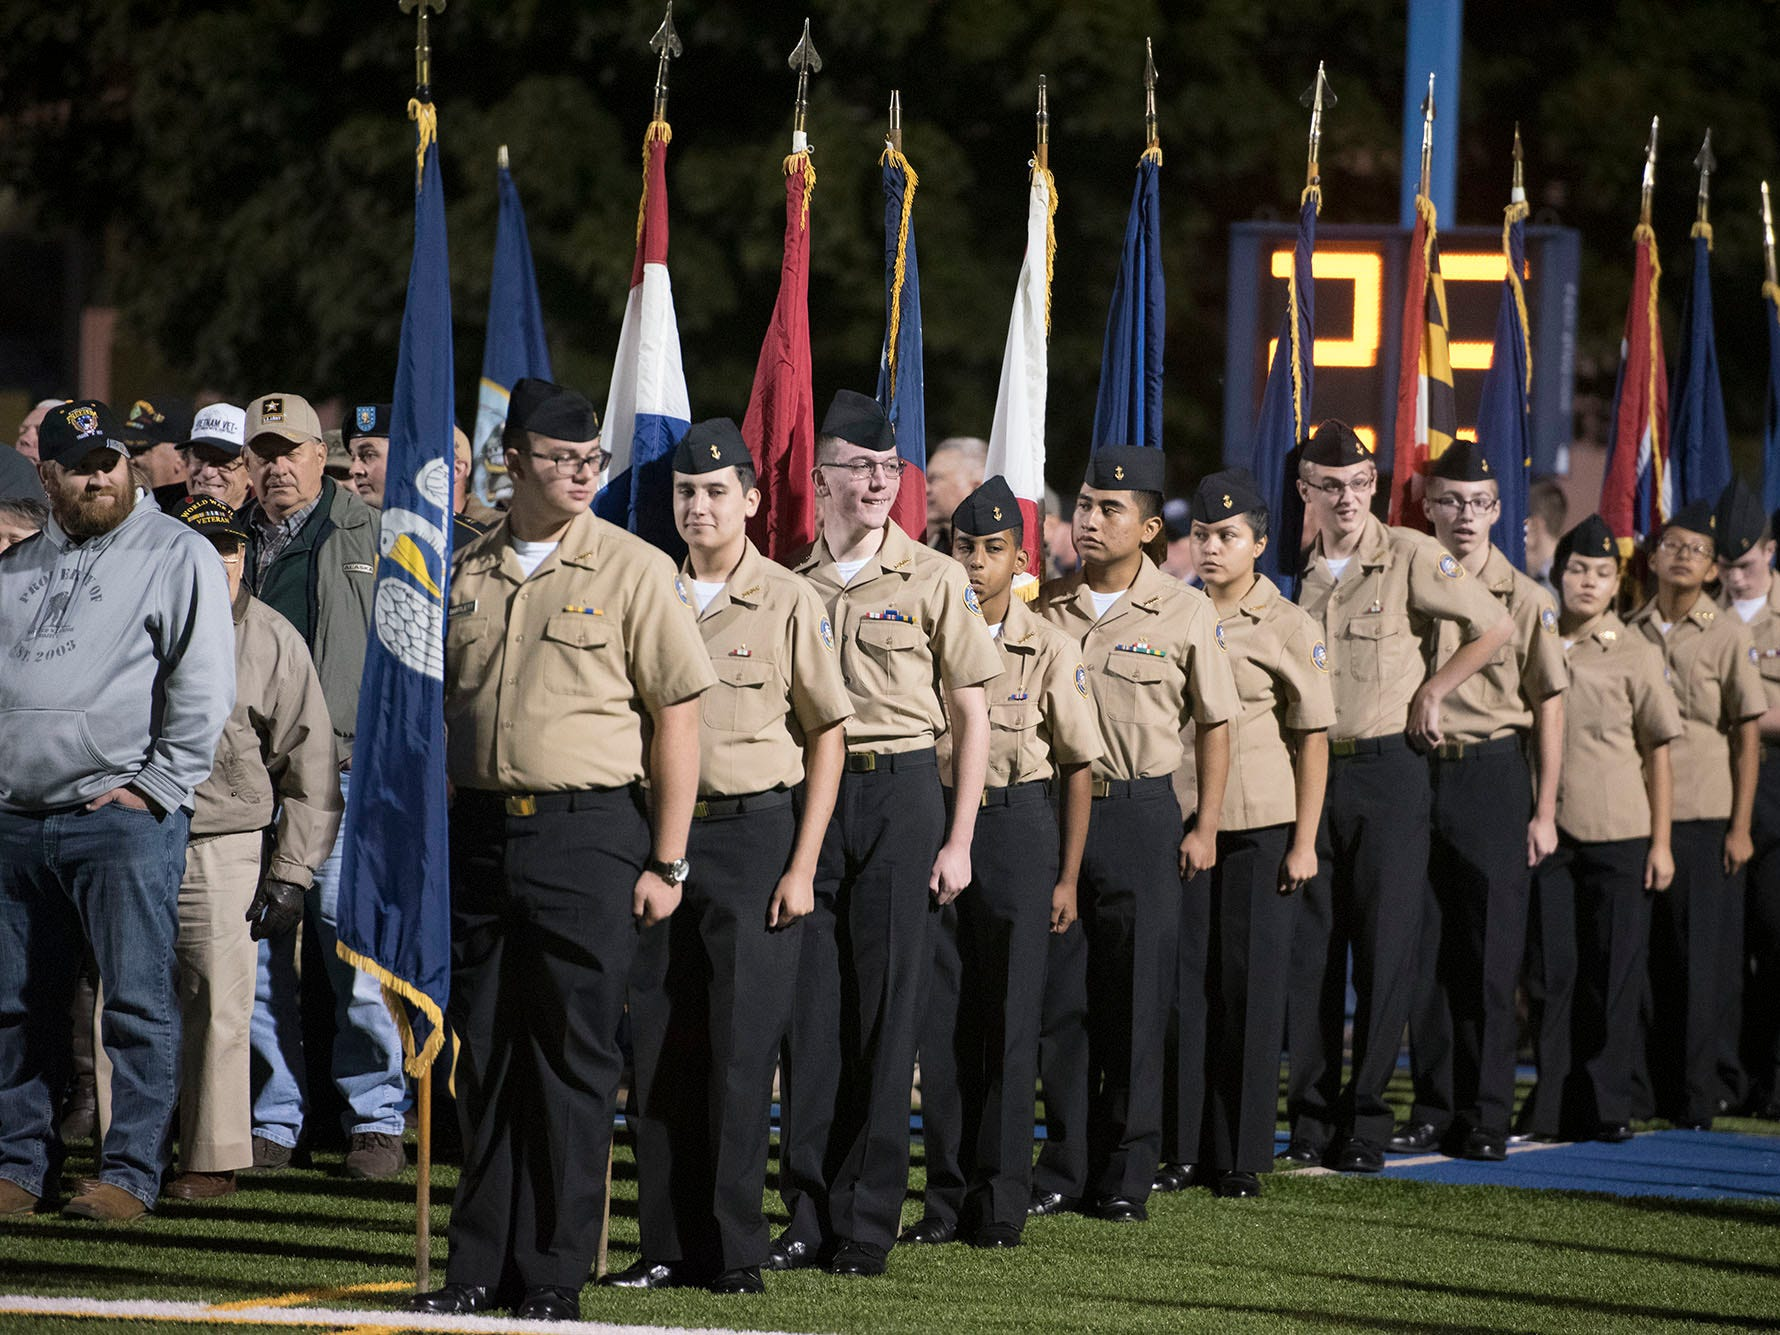 Military appreciation night was held at Trojan Stadium. Chambersburg dropped a 28-13 game against Harrisburg in PIAA football on Friday, Oct. 12, 2018.